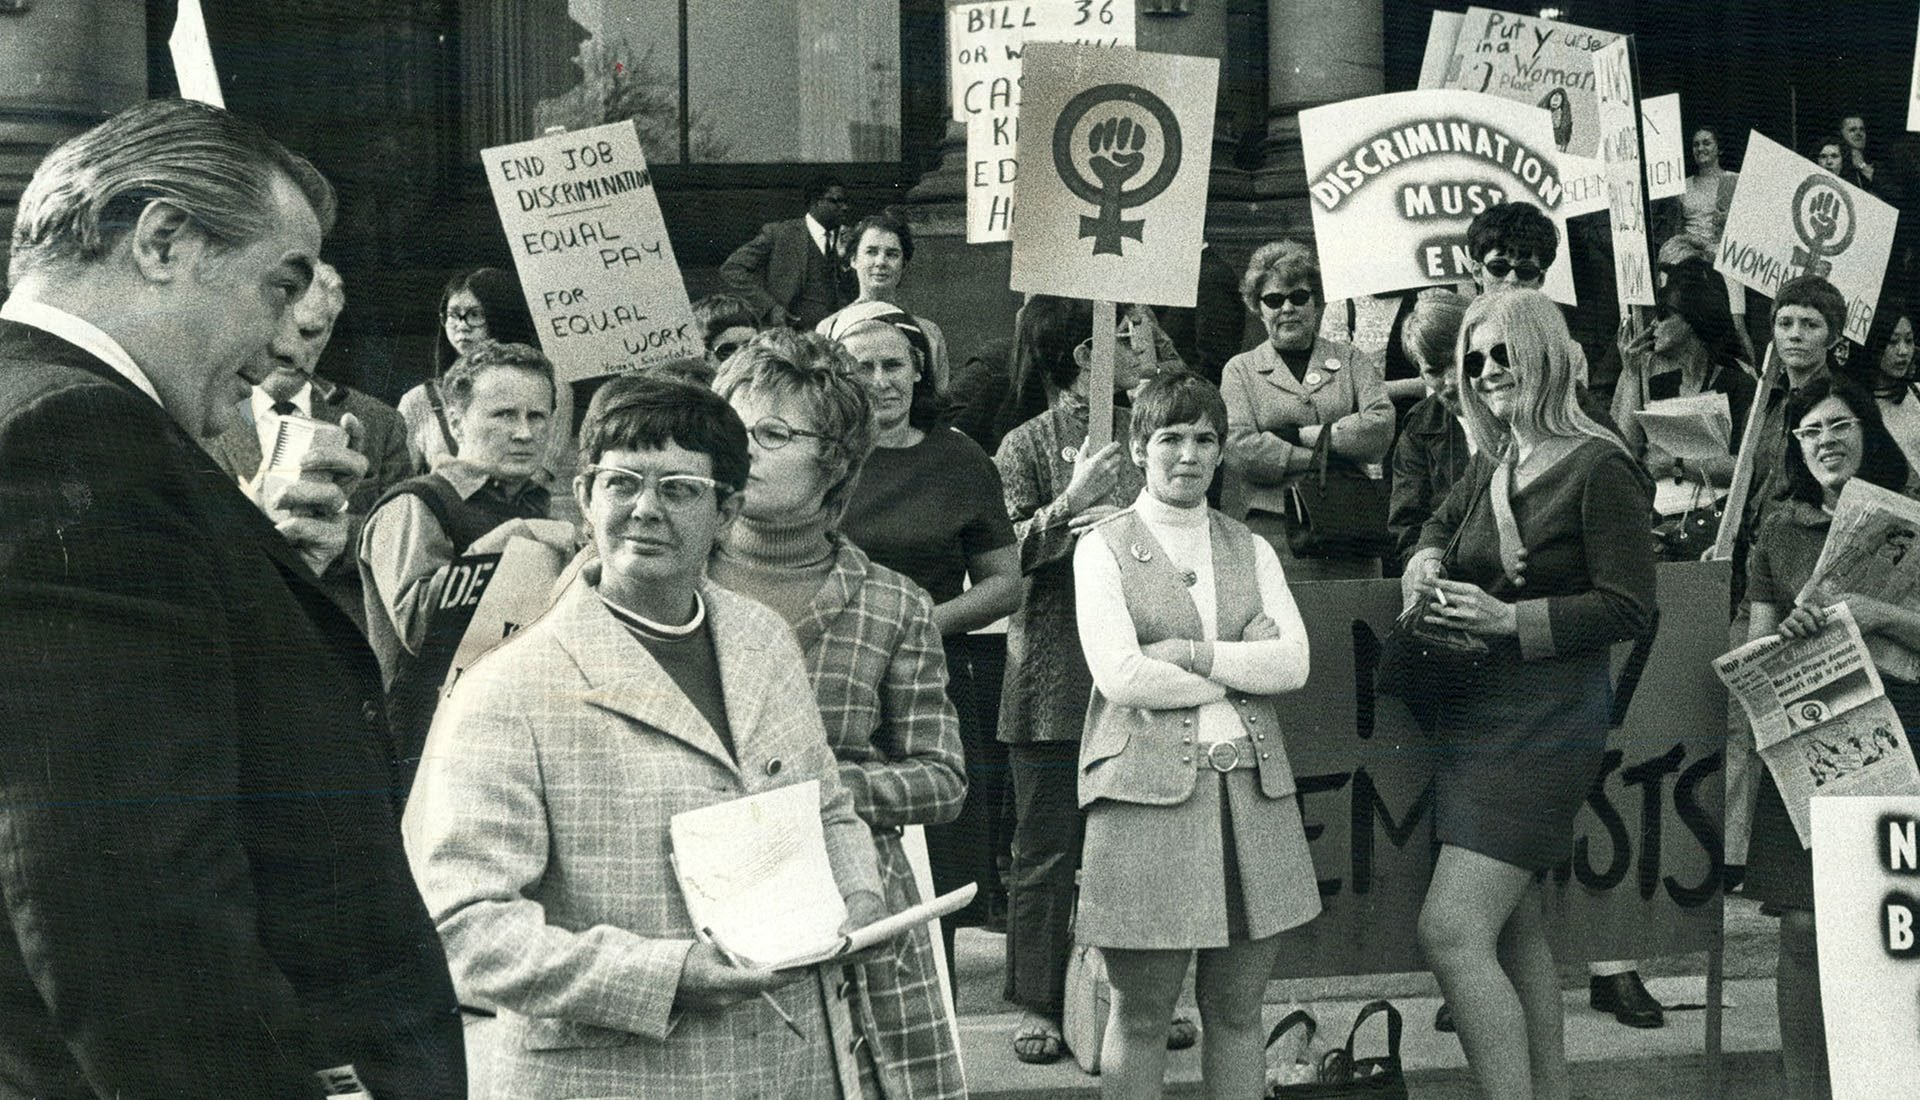 Members of the Voice of Women, Women's Liberation Movement, New Feminists and Young Socialists demonstrated at Queen's Park in April 1970